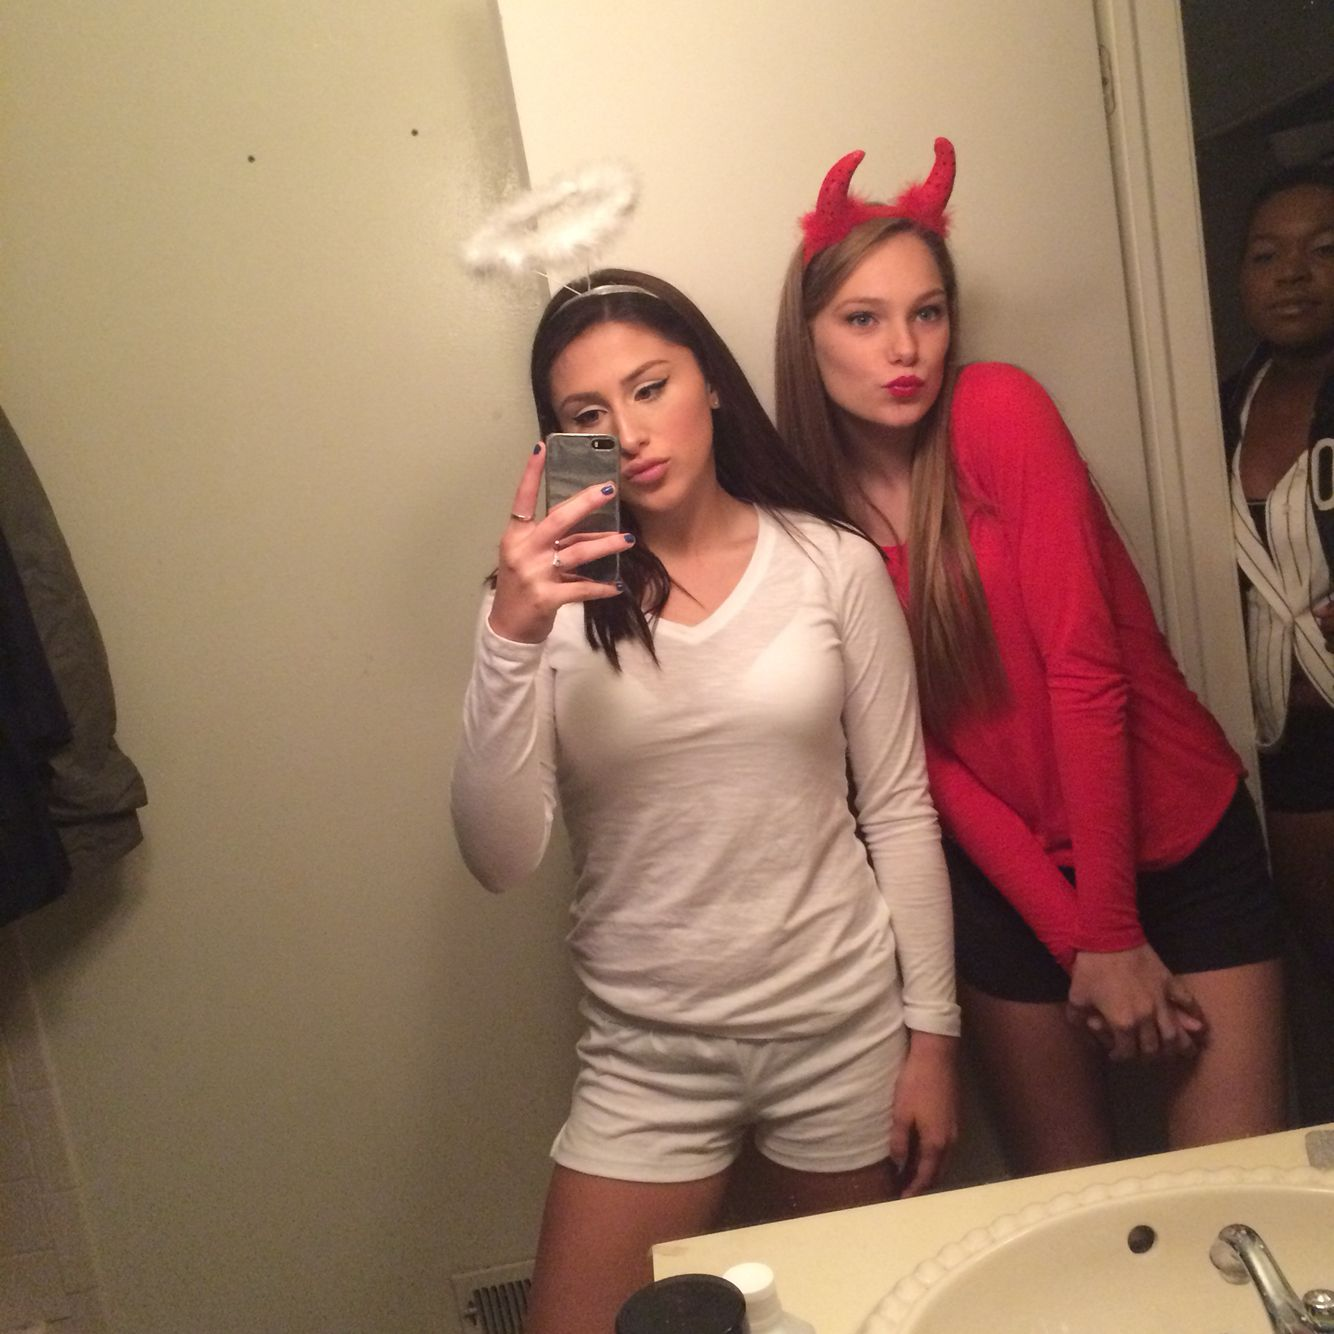 2020 Halloween Costume Ideas Pin by morgan on ∴halloween costumes∴ | Teenage halloween